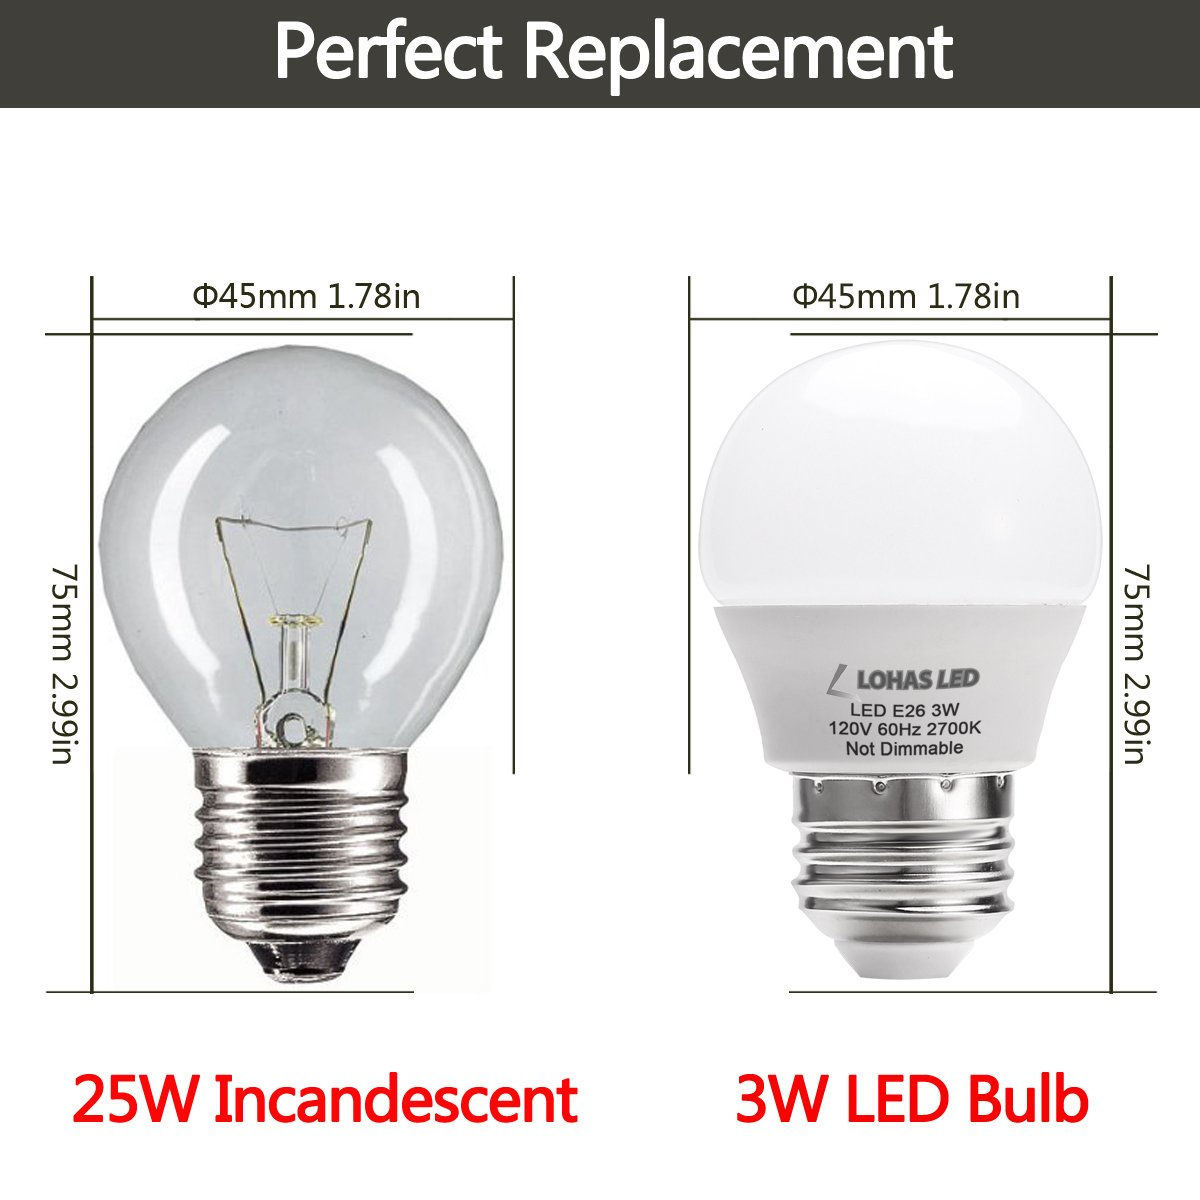 bulb wjtxqstdhgce china lighting high lamp lumen the led made light in product